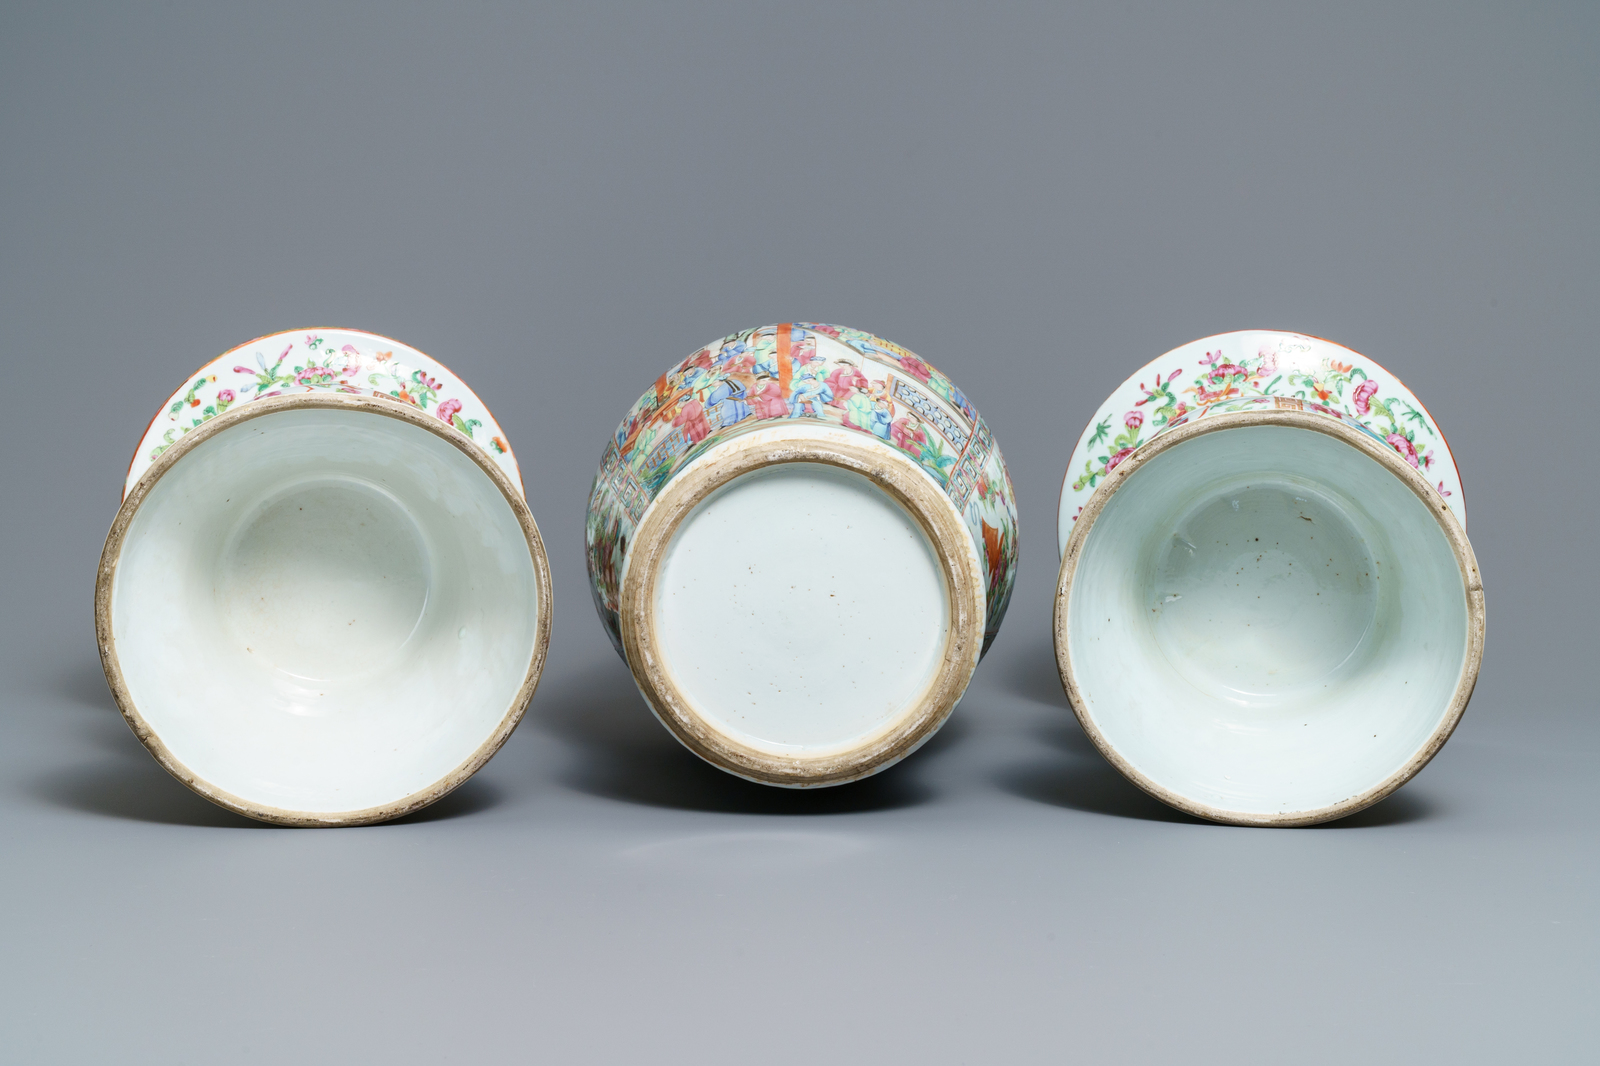 A pair of Chinese Canton famille rose spittoons and a vase, 19th C. - Image 6 of 6